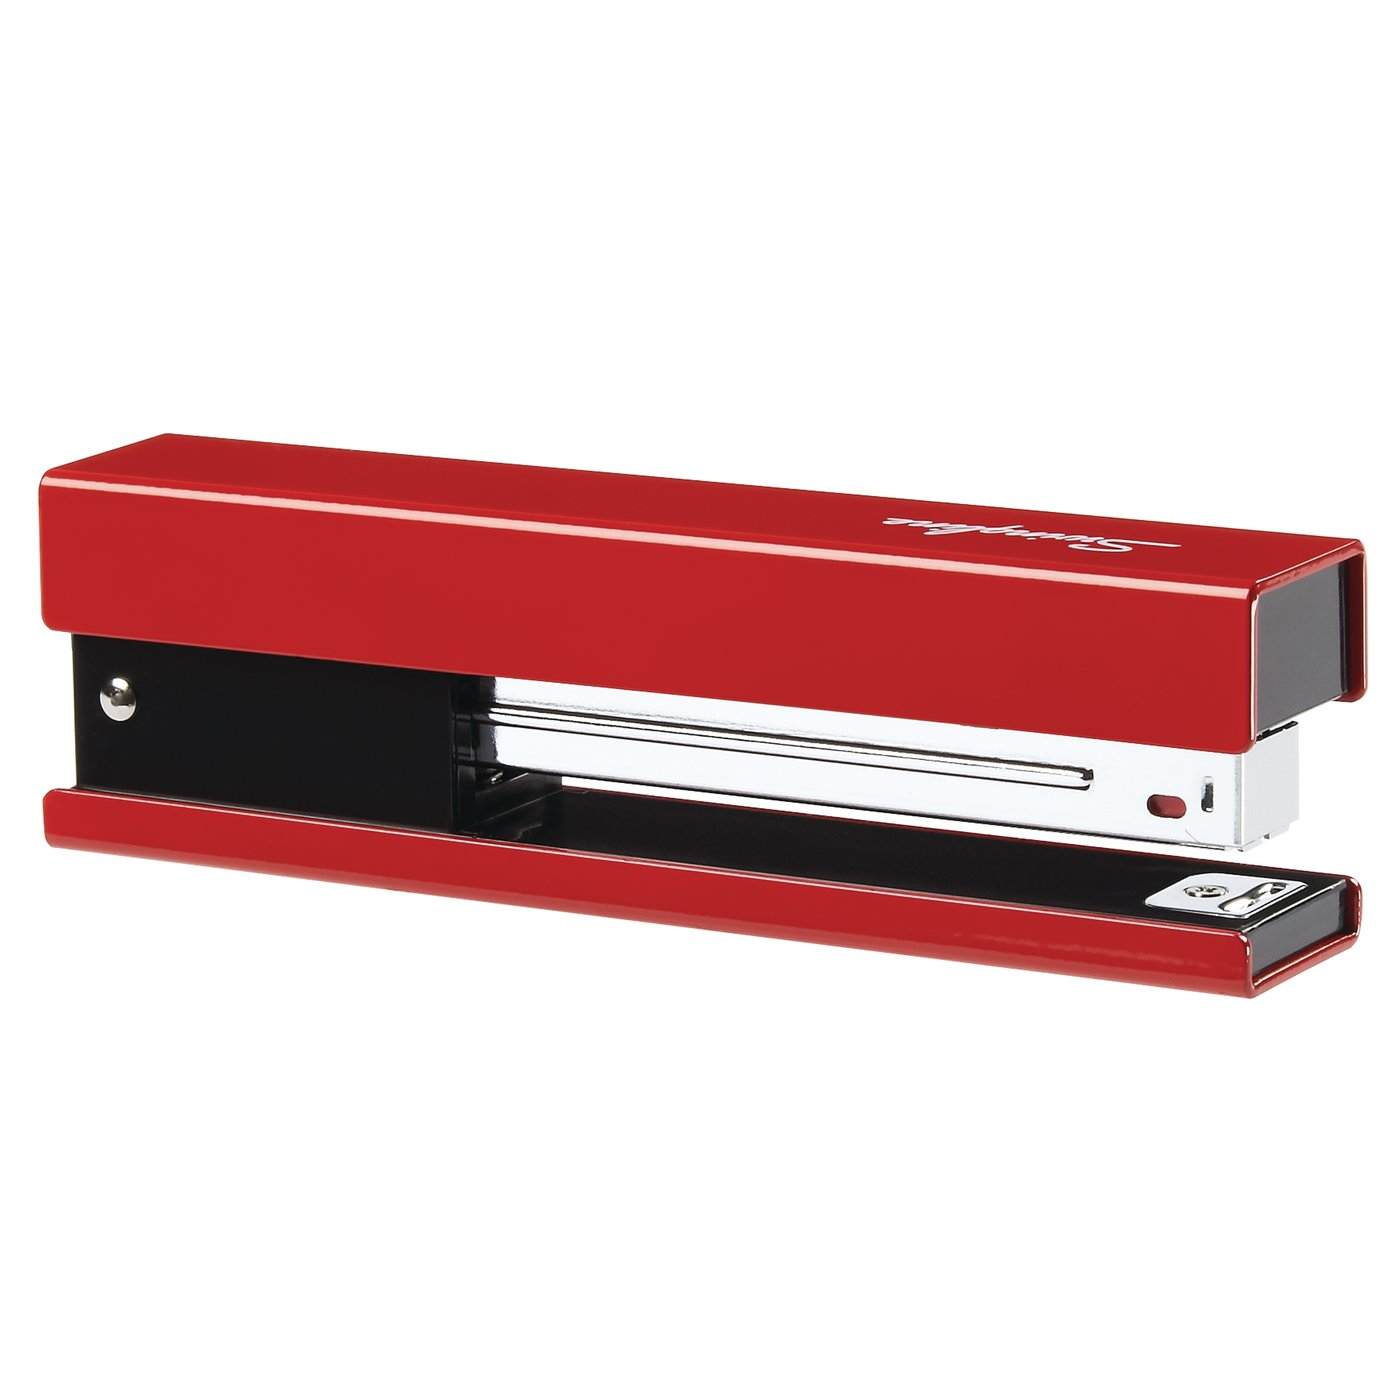 Red//Black Accent S7087831 Desktop Stapler Full Strip 20 Sheets Swingline Stapler